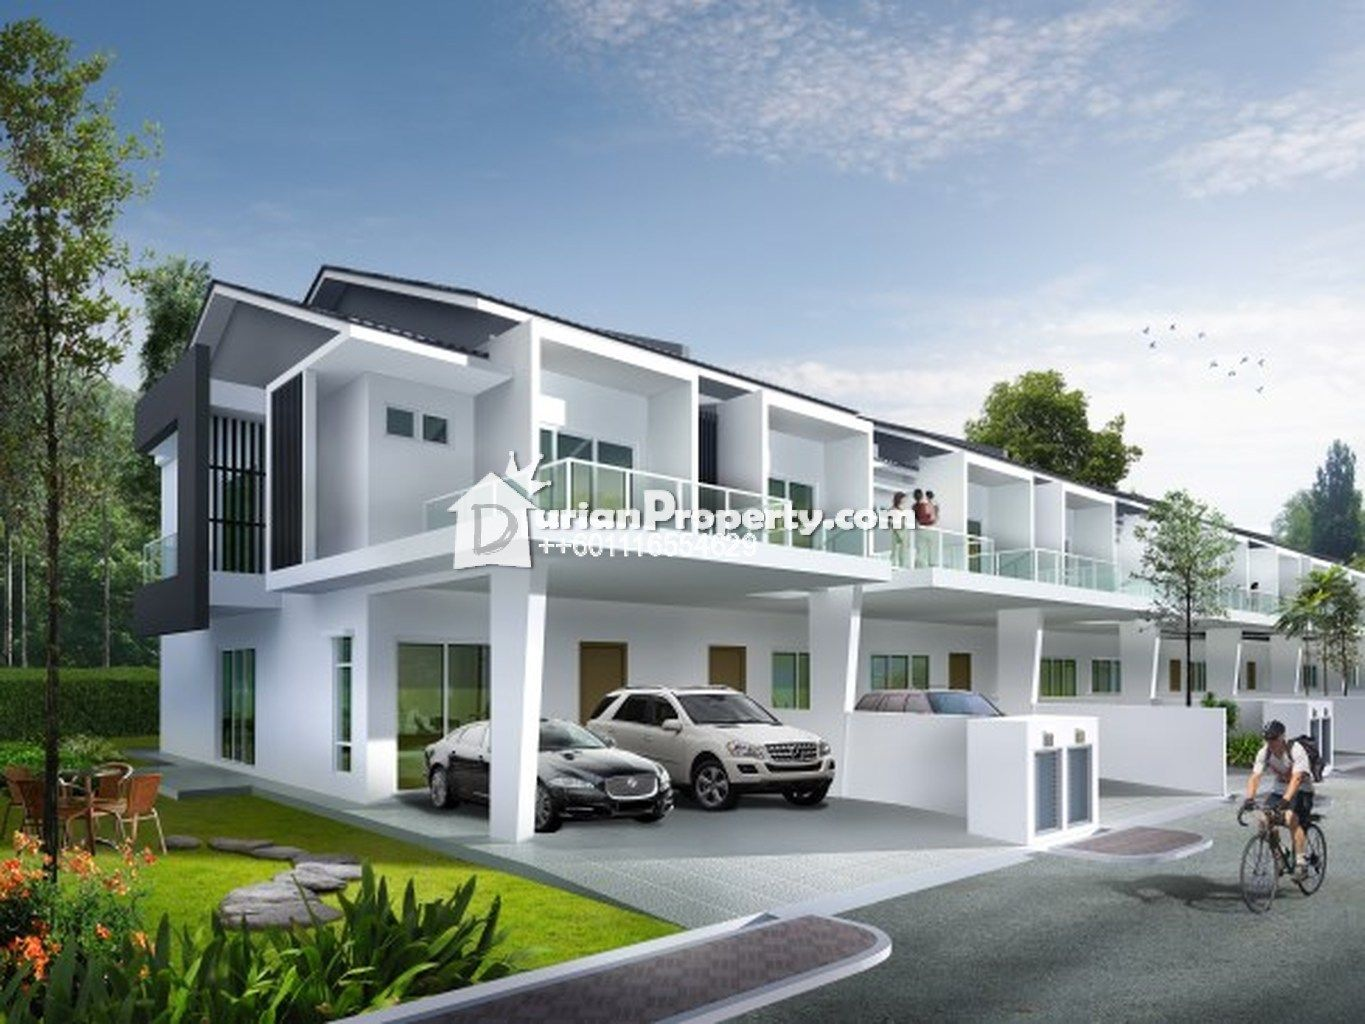 Property For Sale In Malaysia With Images Modern House